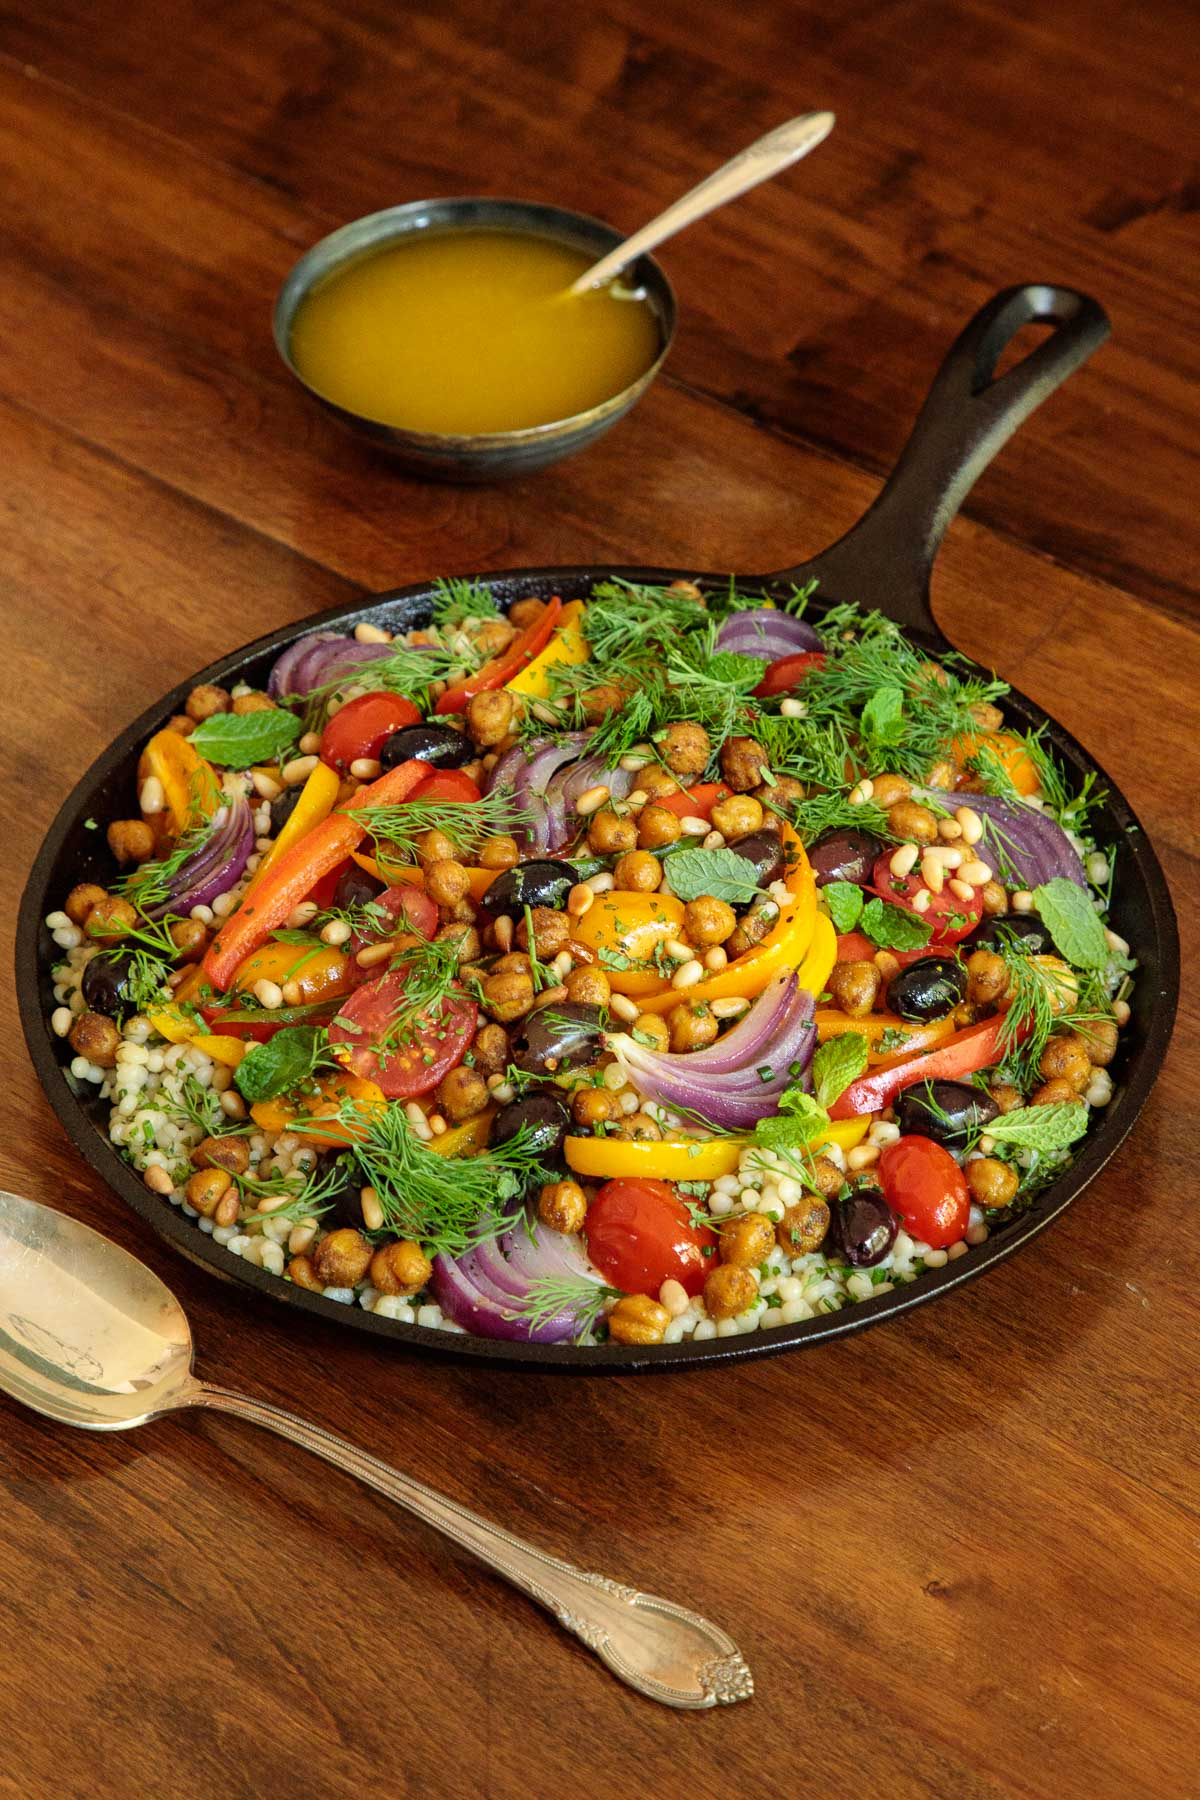 Photo of a cast iron skillet filled with Roasted Veggie and Crispy Chickpea Salad.